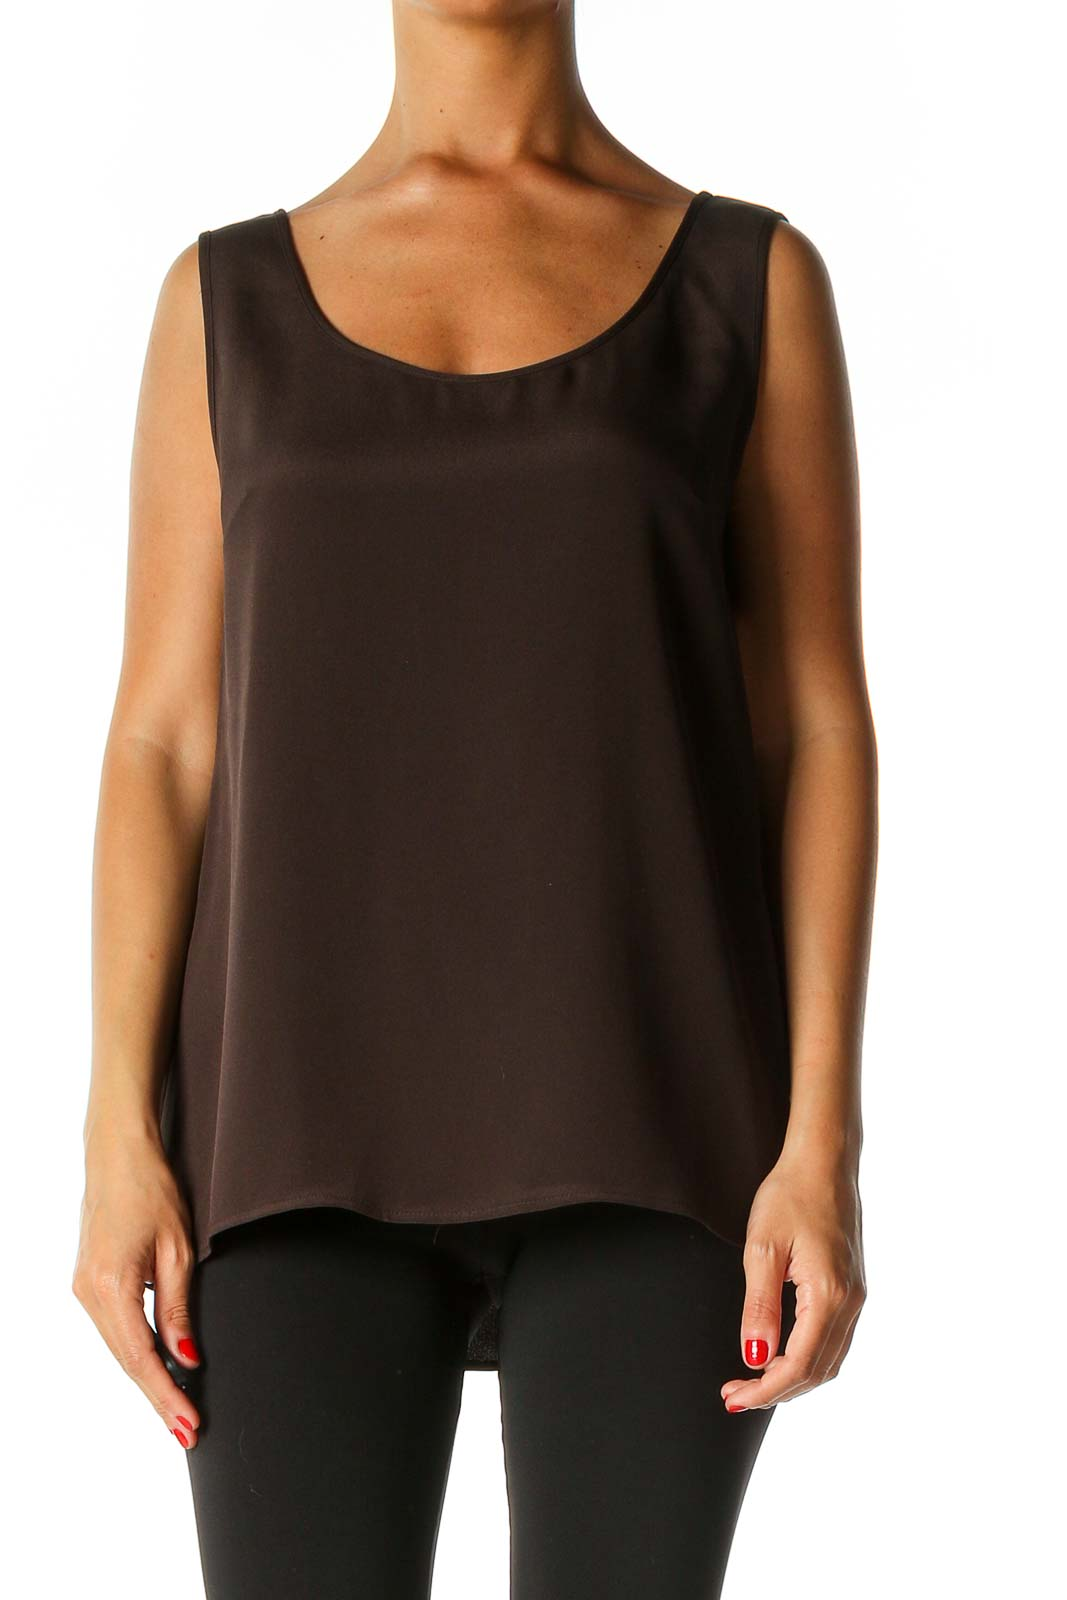 Brown Solid Casual Tank Top Front